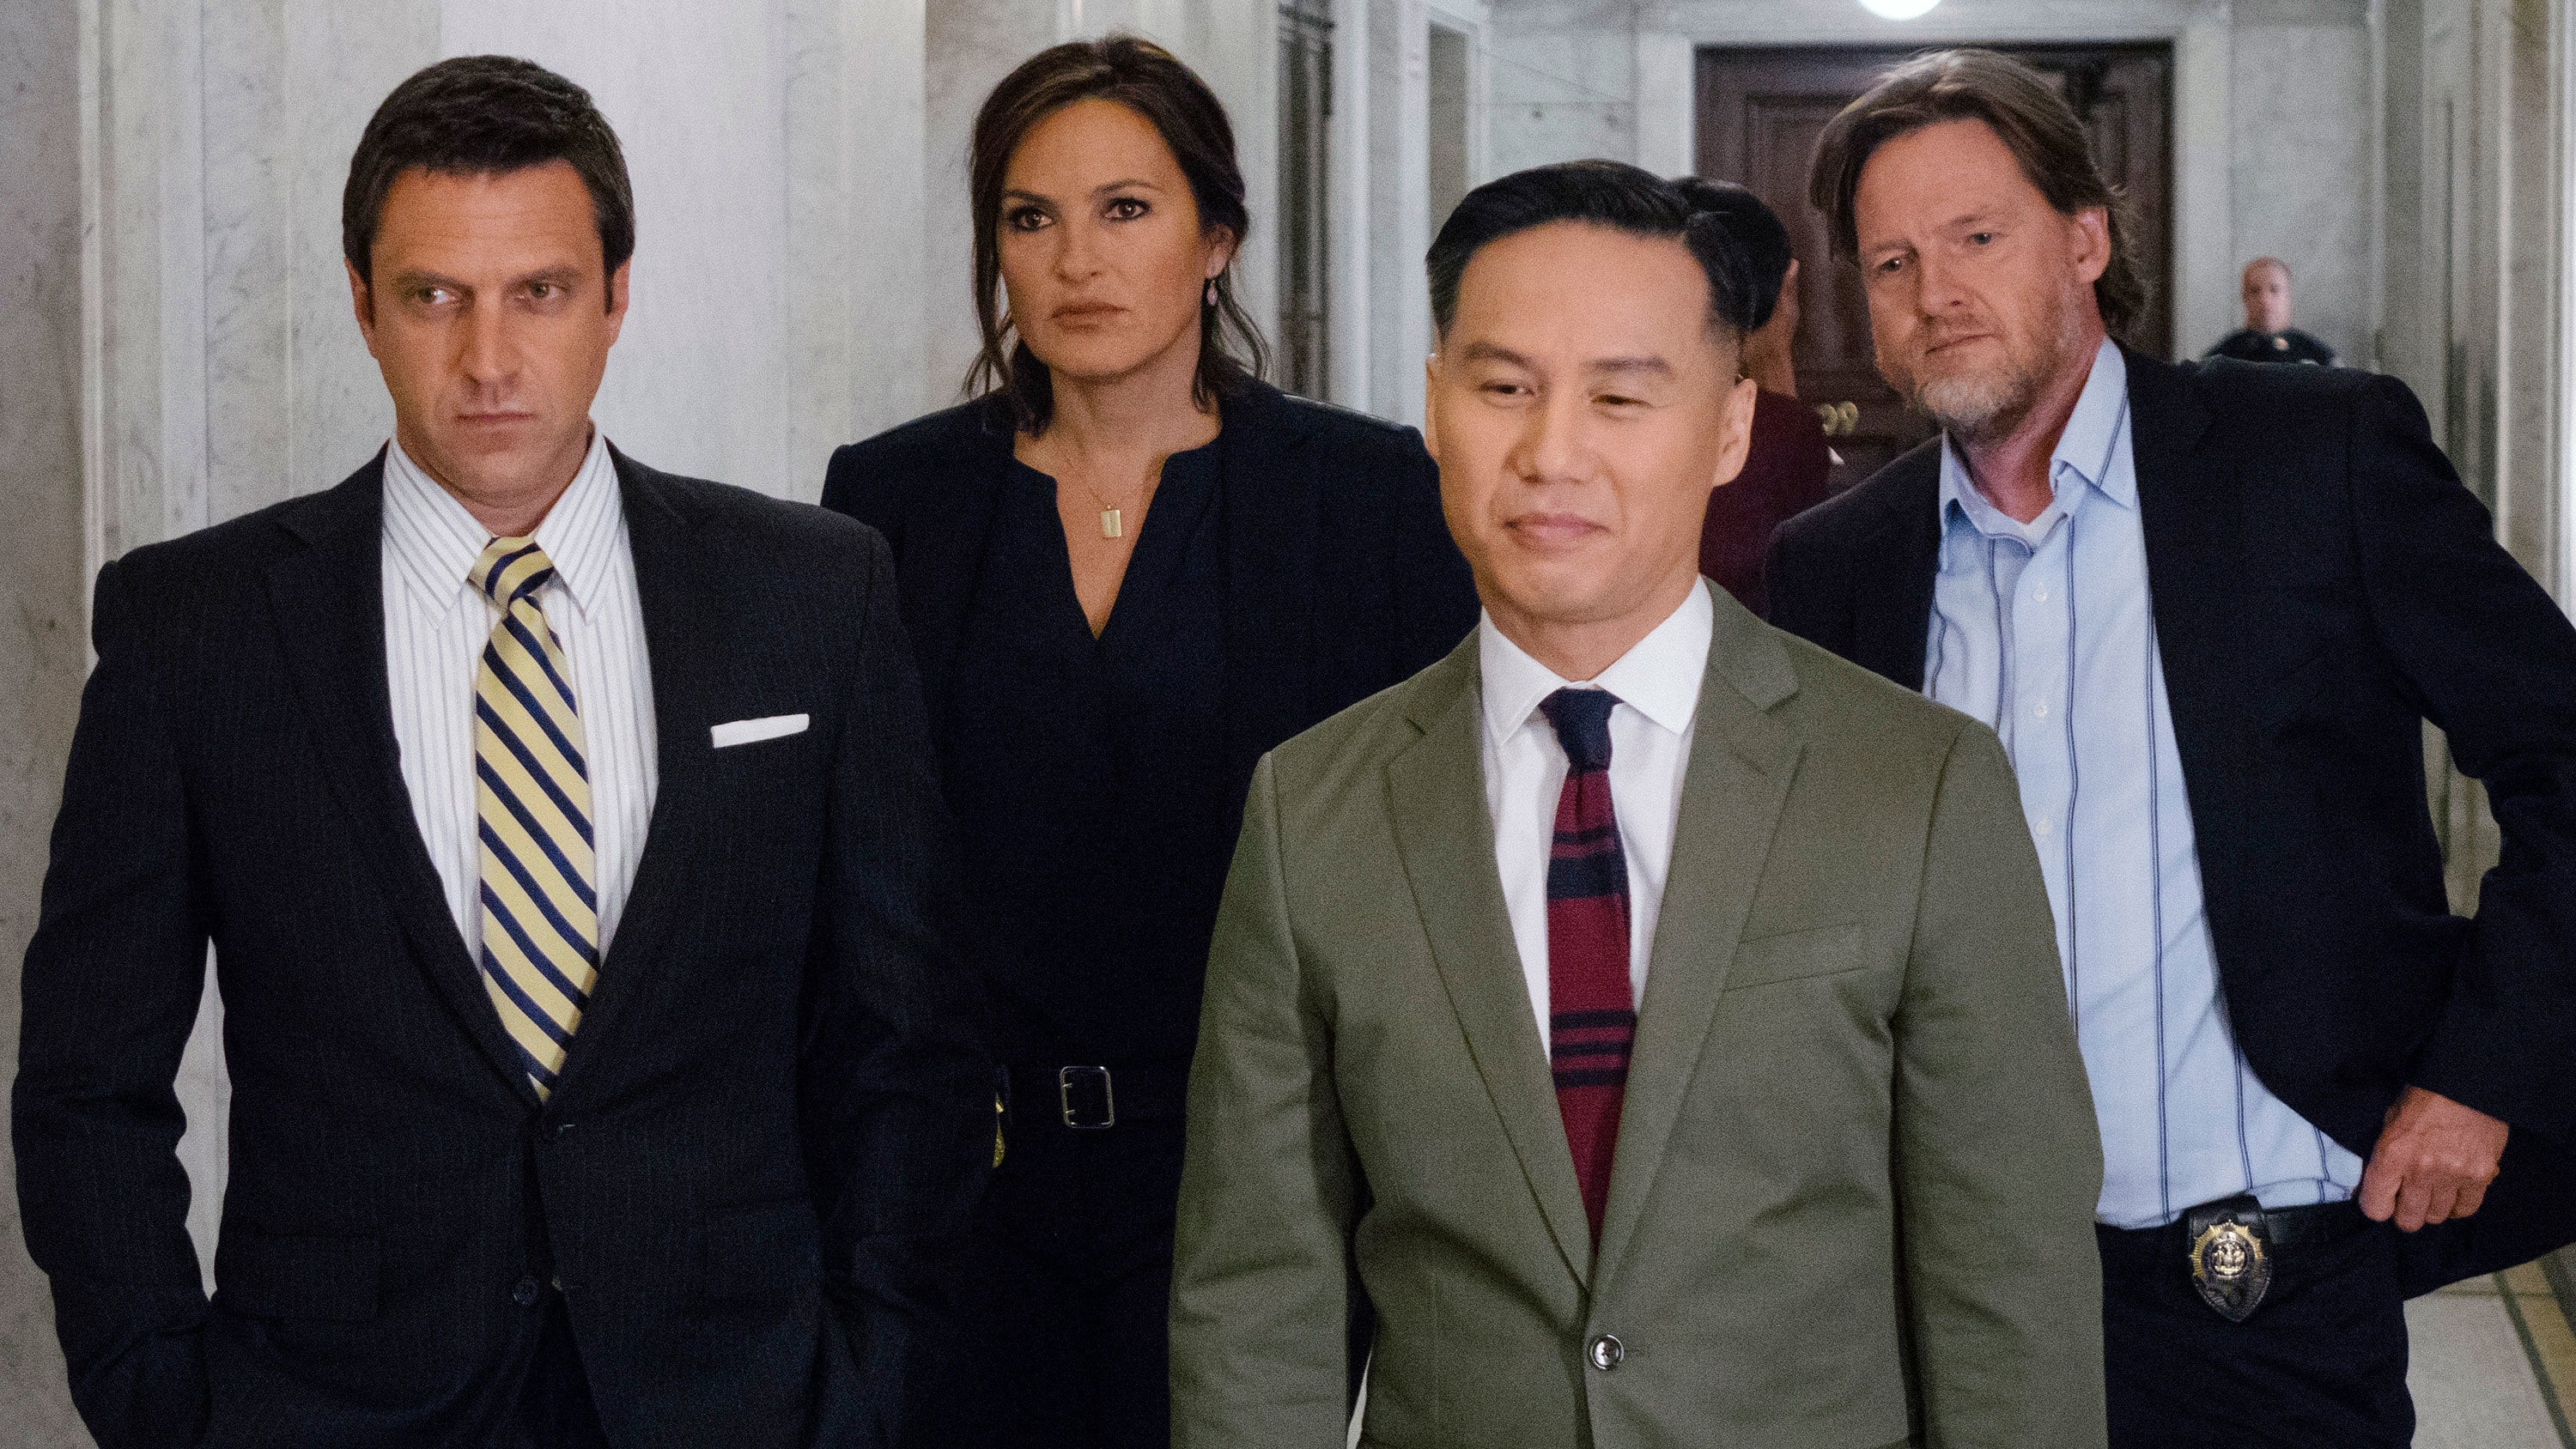 Law & Order: Special Victims Unit - Season 15 Episode 23 : Thought Criminal